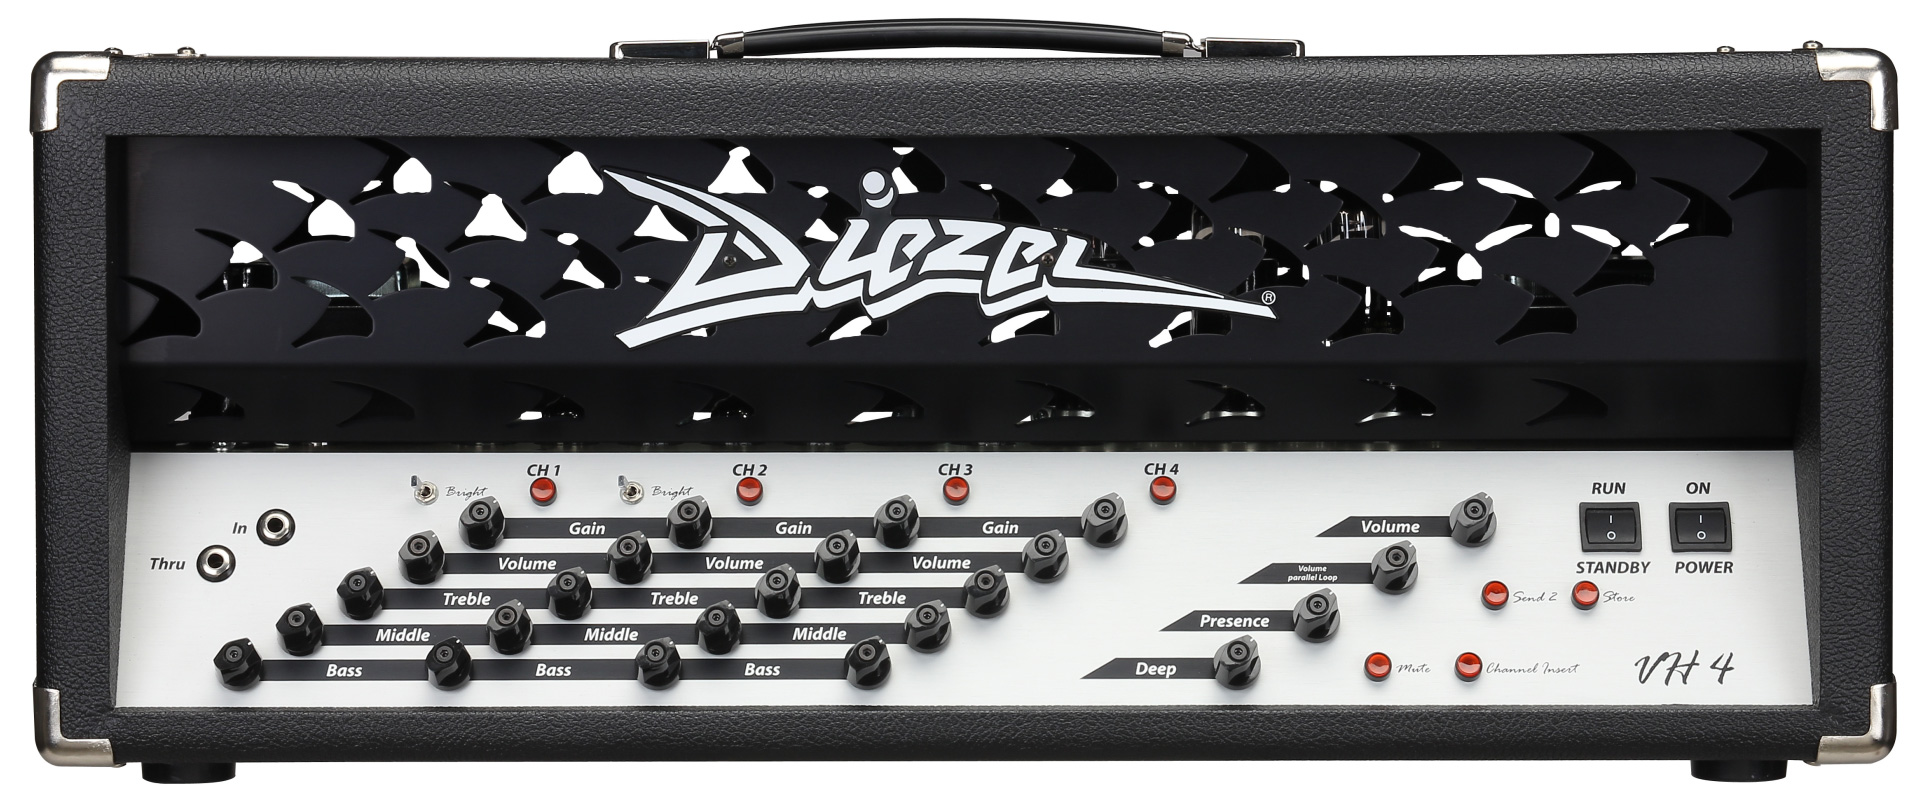 Diezel VH4   The iconic, first Diezel amp. Still made the exact same way as in 1992, the VH4 revolutionized the industry with its 4-Channel and individual inserts design.